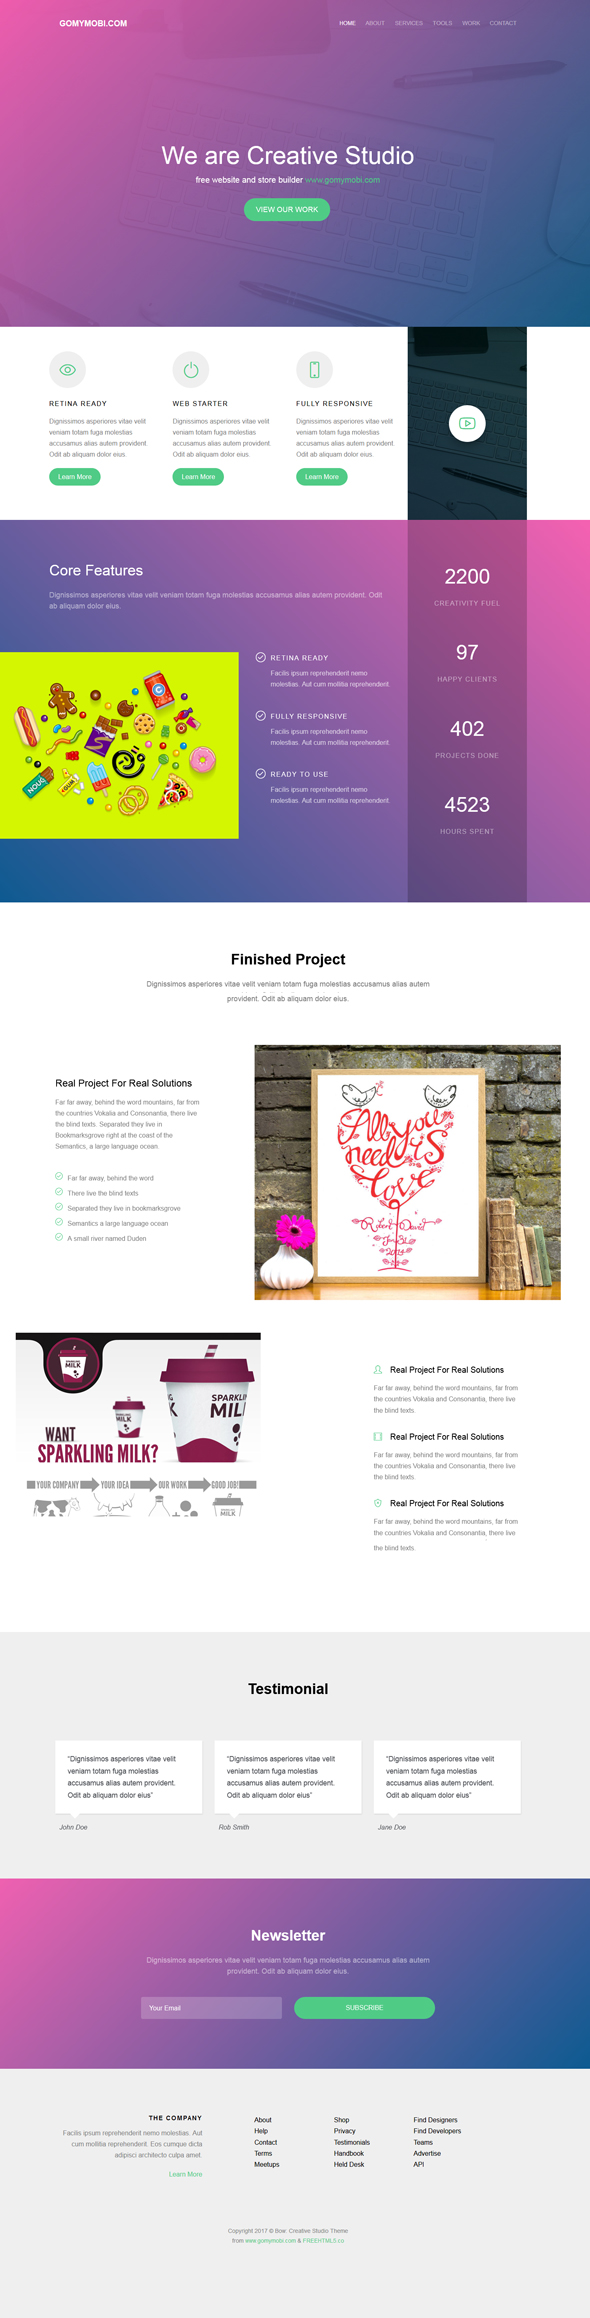 gomymobiBSB's Site Theme: Bow - Creative Studio - 2